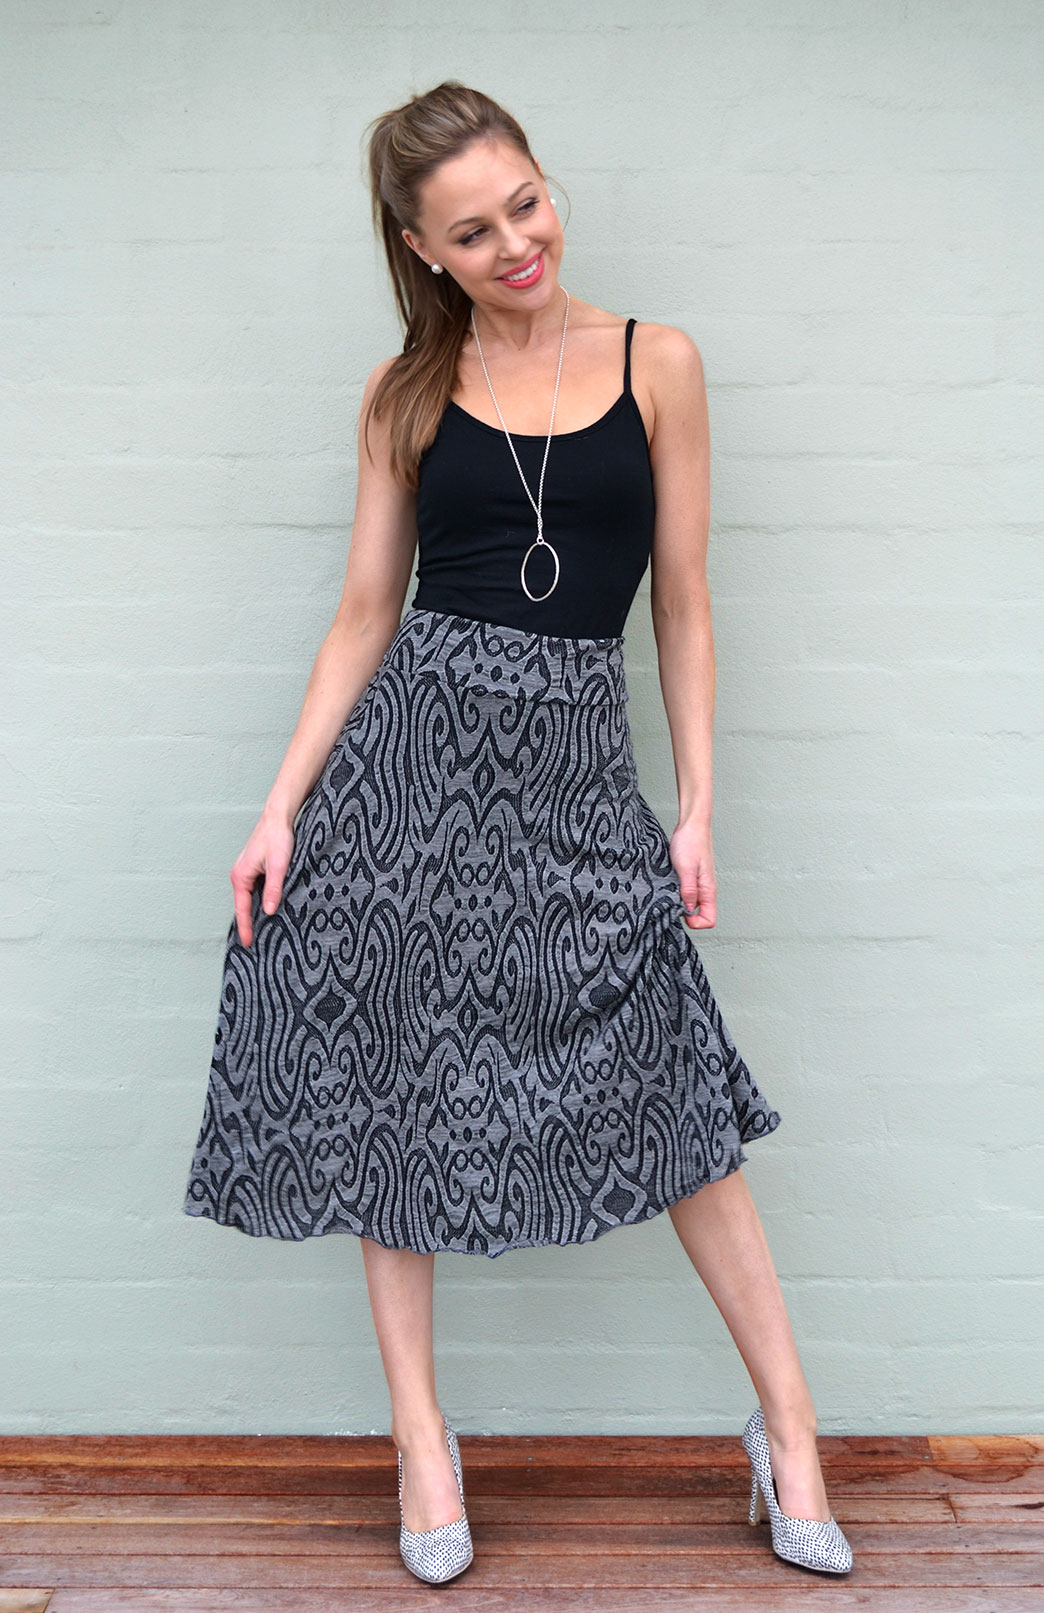 Twirl Skirt - Women's Black and Grey Patterned A-Line Skirt - Smitten Merino Tasmania Australia